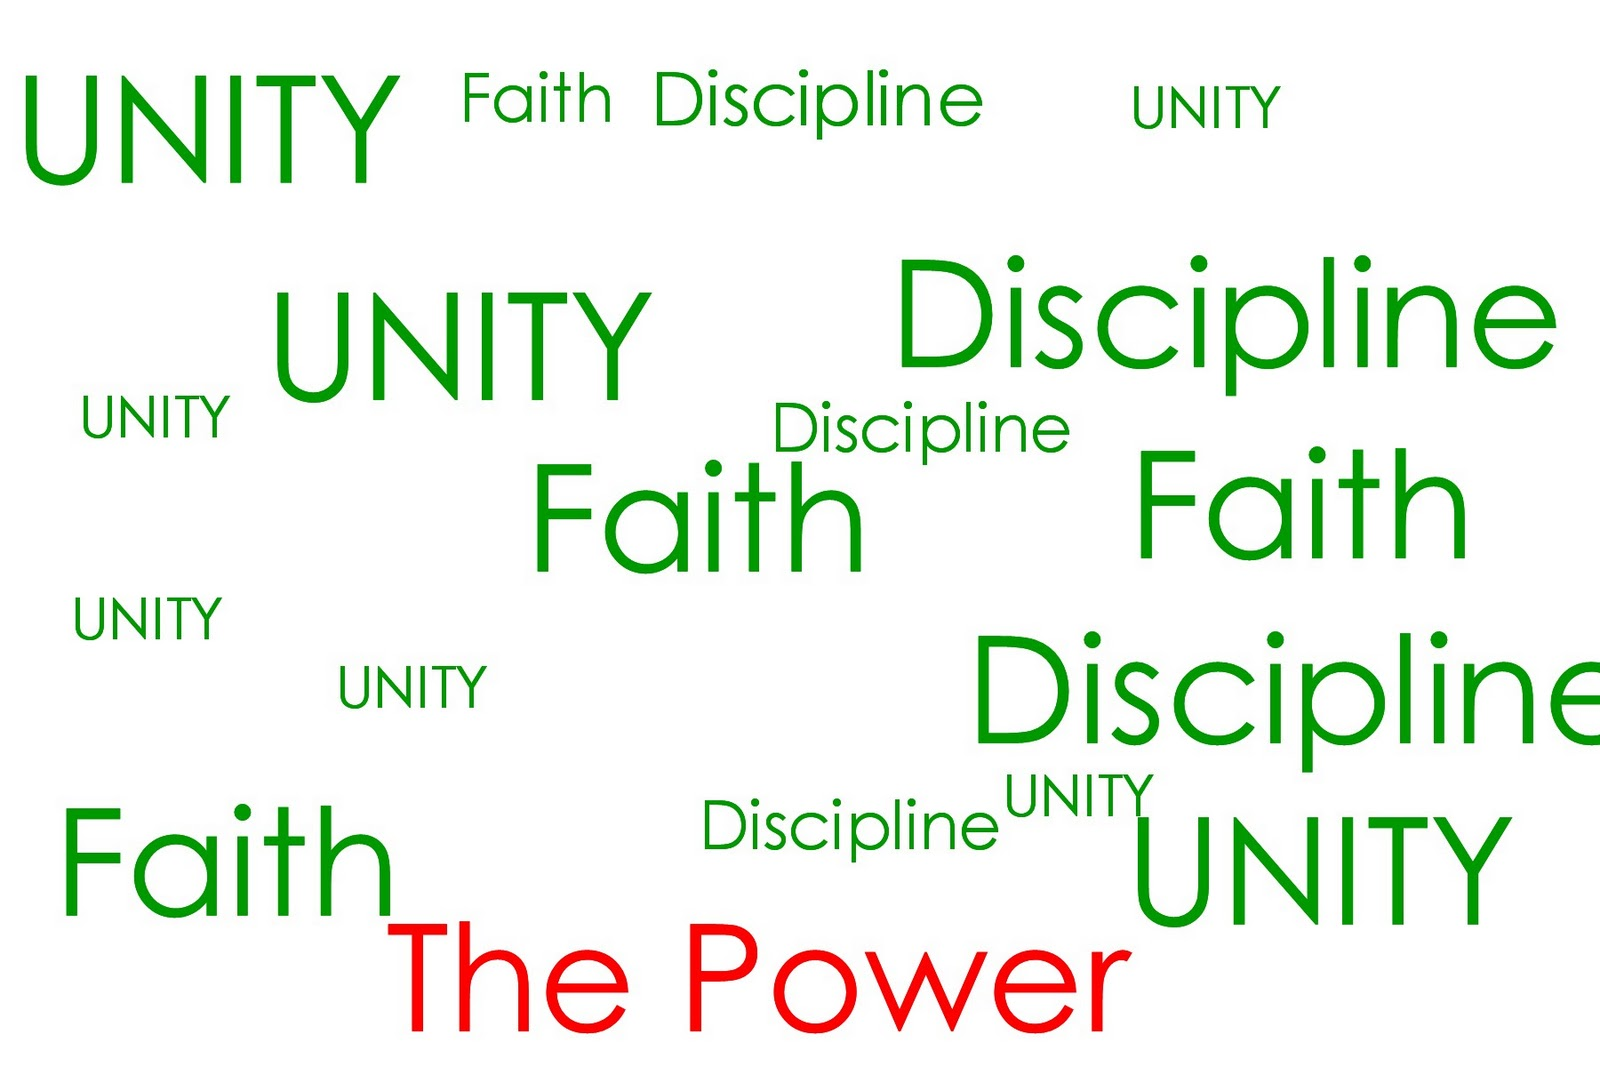 essay on unity faith discipline the foundation of pakistan